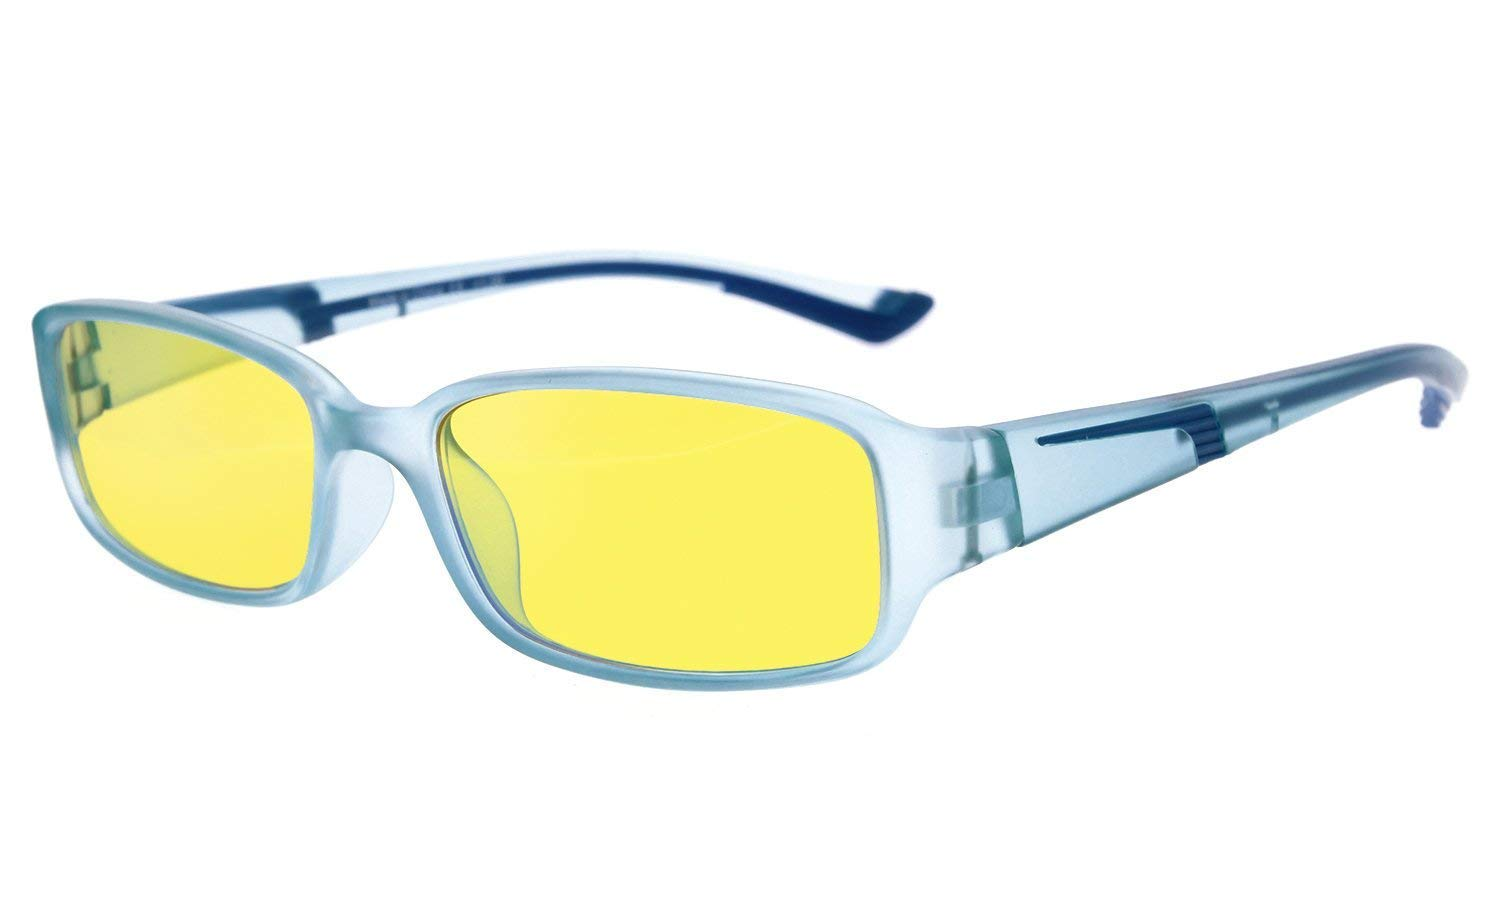 16077e9fbbbd Amazon.com: Eyekepper Anti Blue Light More Than 94% Computer Glasses,UV and  Computer/TV Electromagnetic Radiation Protection Eyeglasses, Yellow Tinted  Lens ...